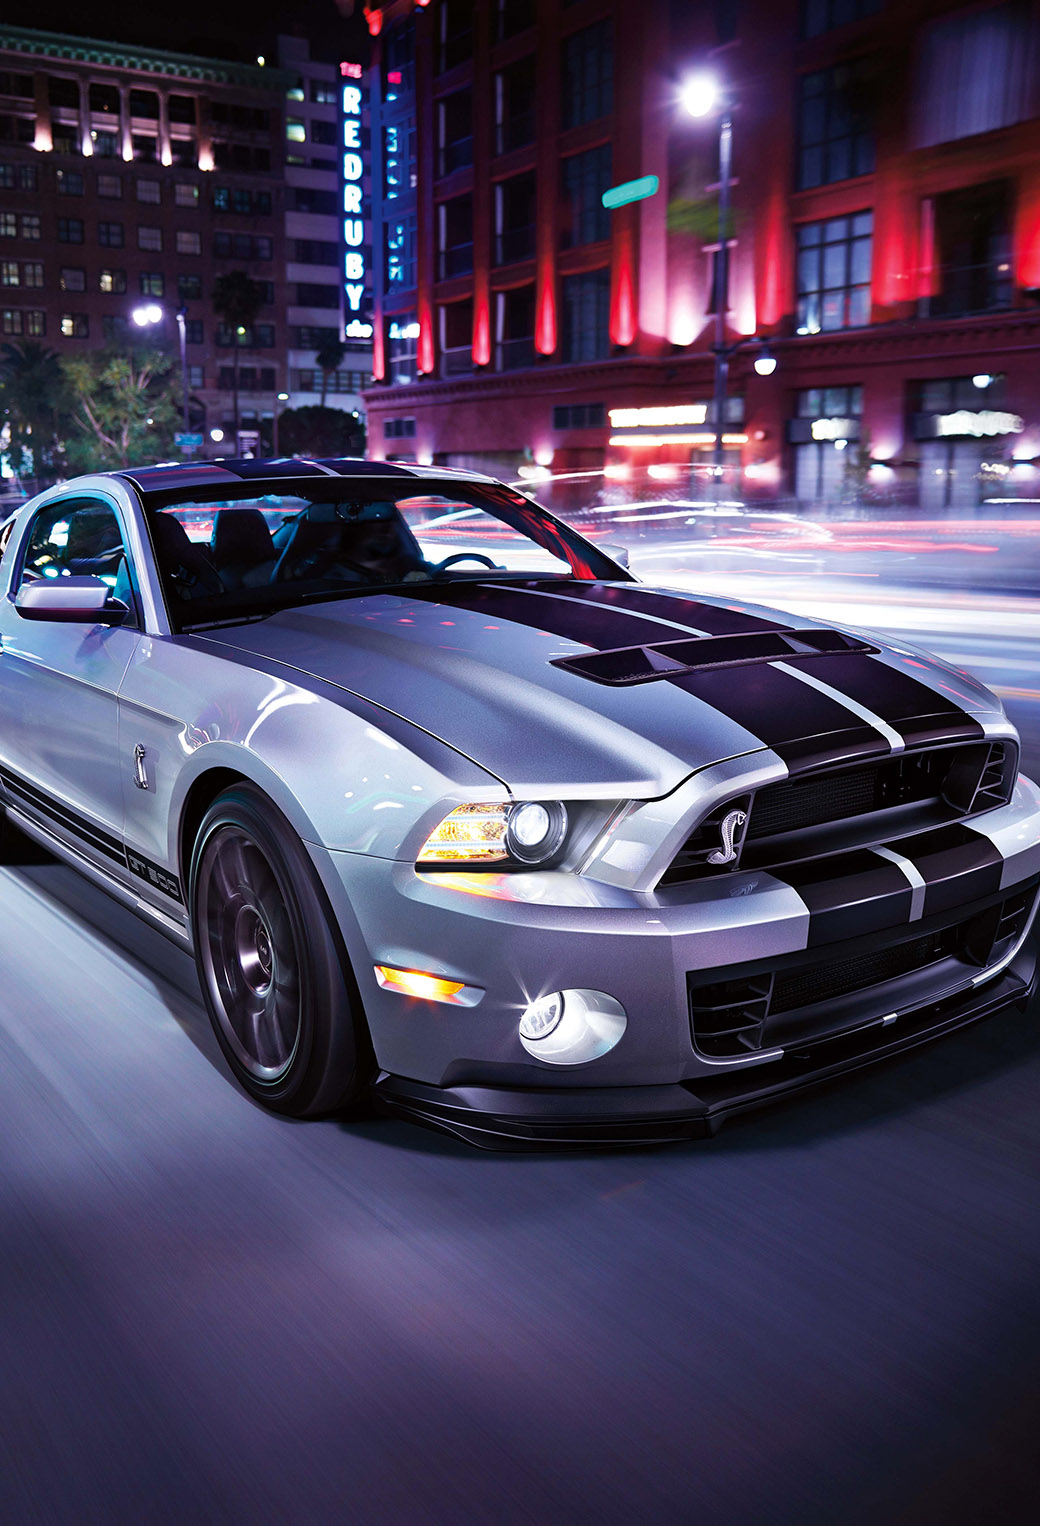 Smart Phone Wallpapers Girls Download 3d Car Wallpaper For Mobile Gallery